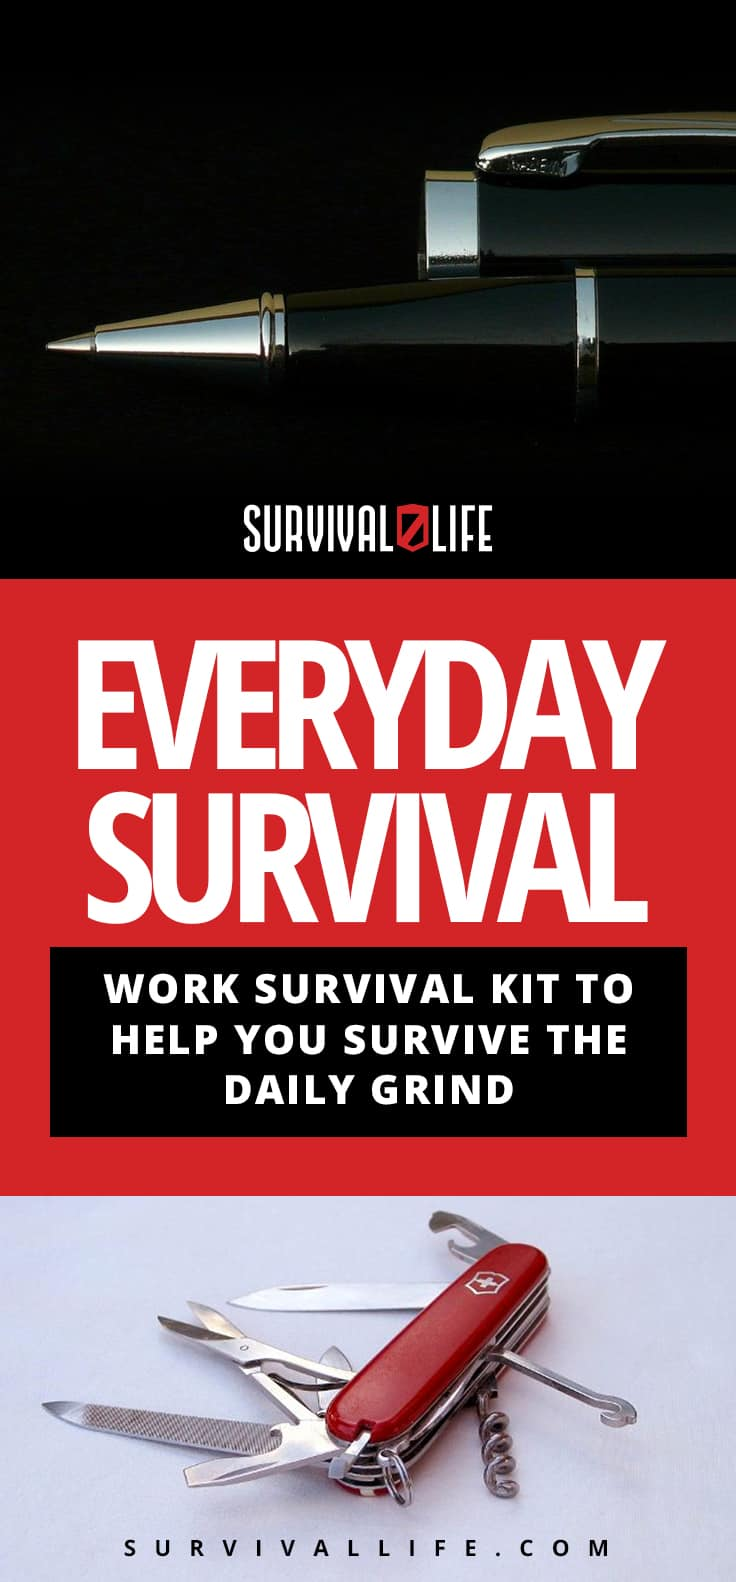 Everyday Survival: Work Survival Kit To Help You Survive The Daily Grind